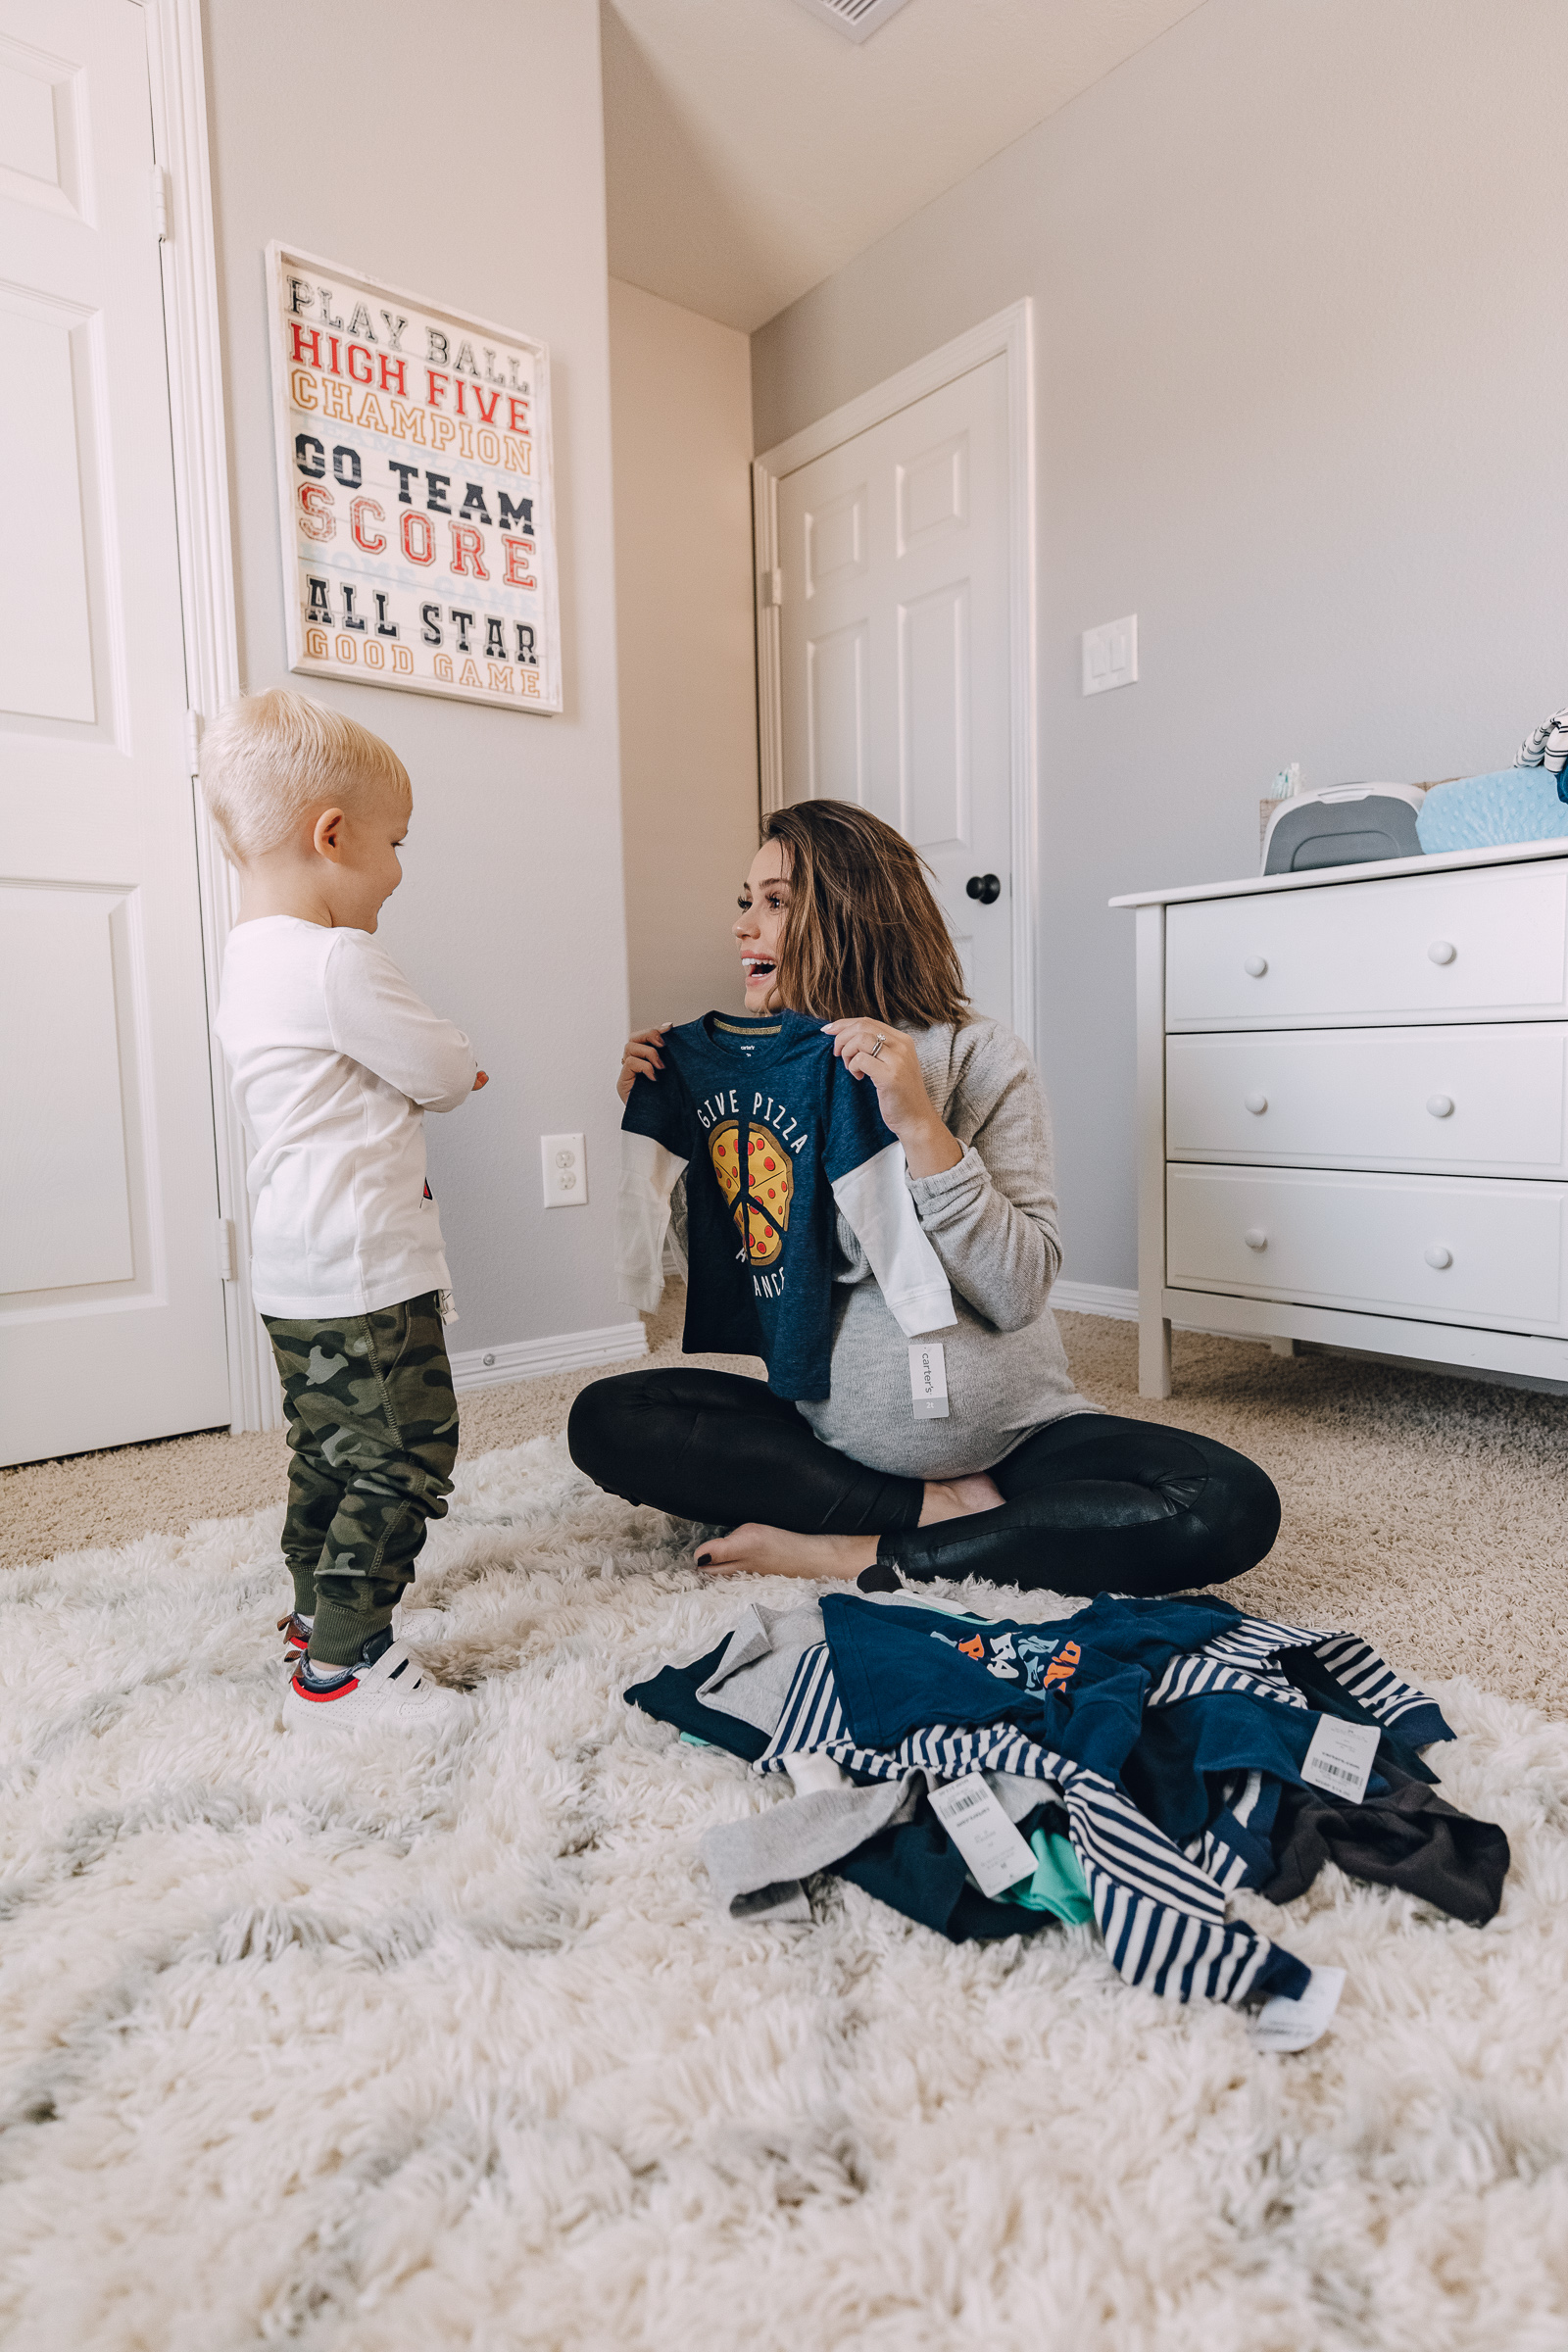 lifestyle blogger Elly Brown shares where to buy great toddler clothing at great prices!